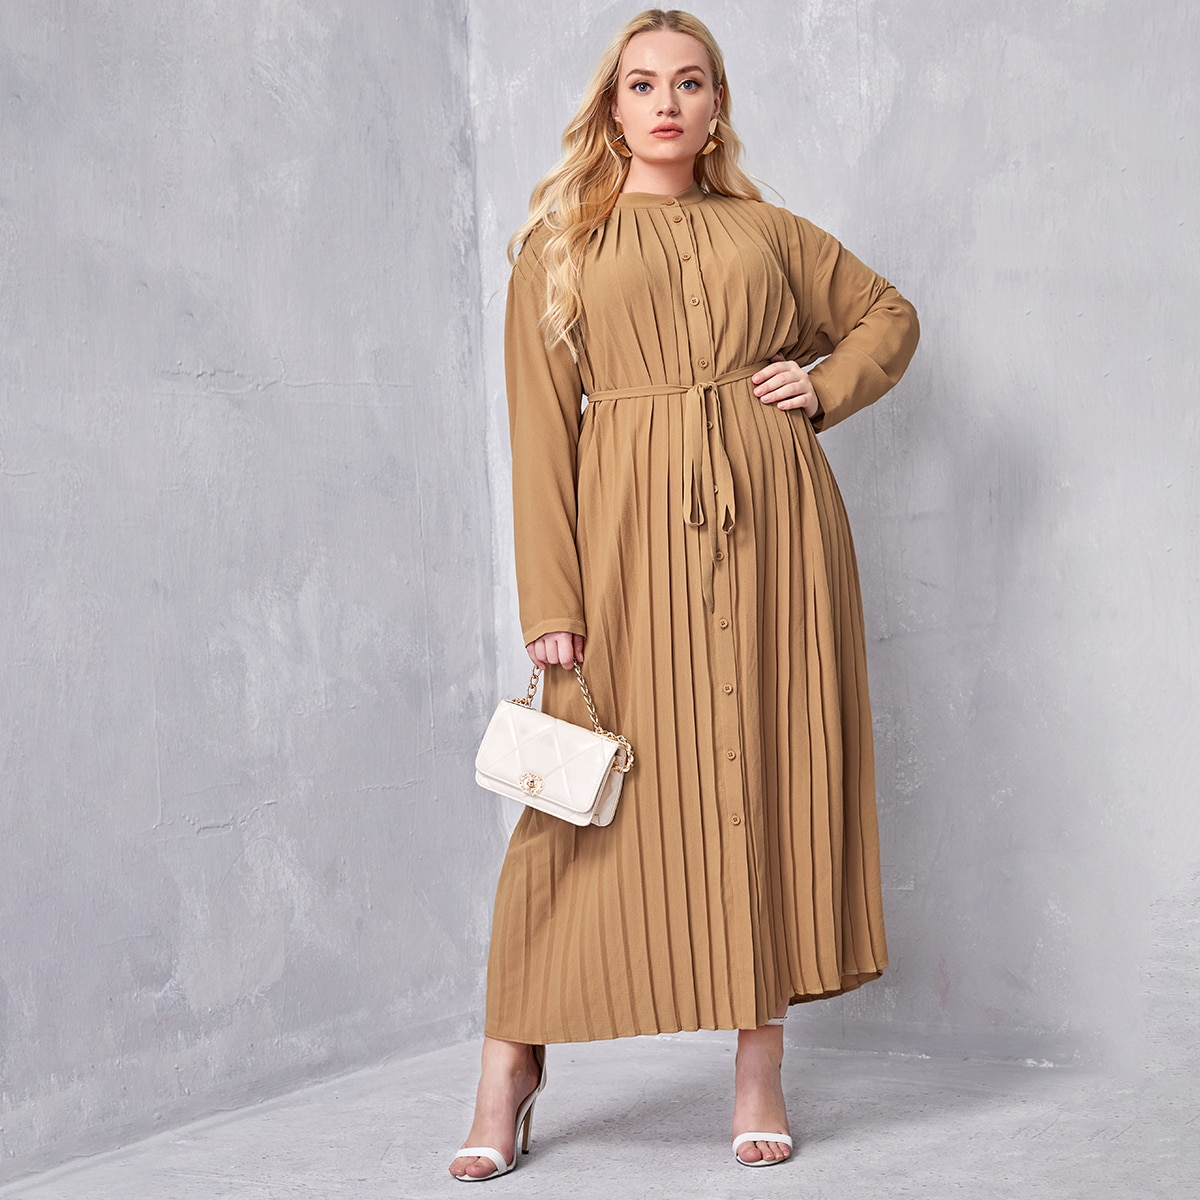 Plus Single Breasted Pleated Belted Dress, SHEIN  - buy with discount